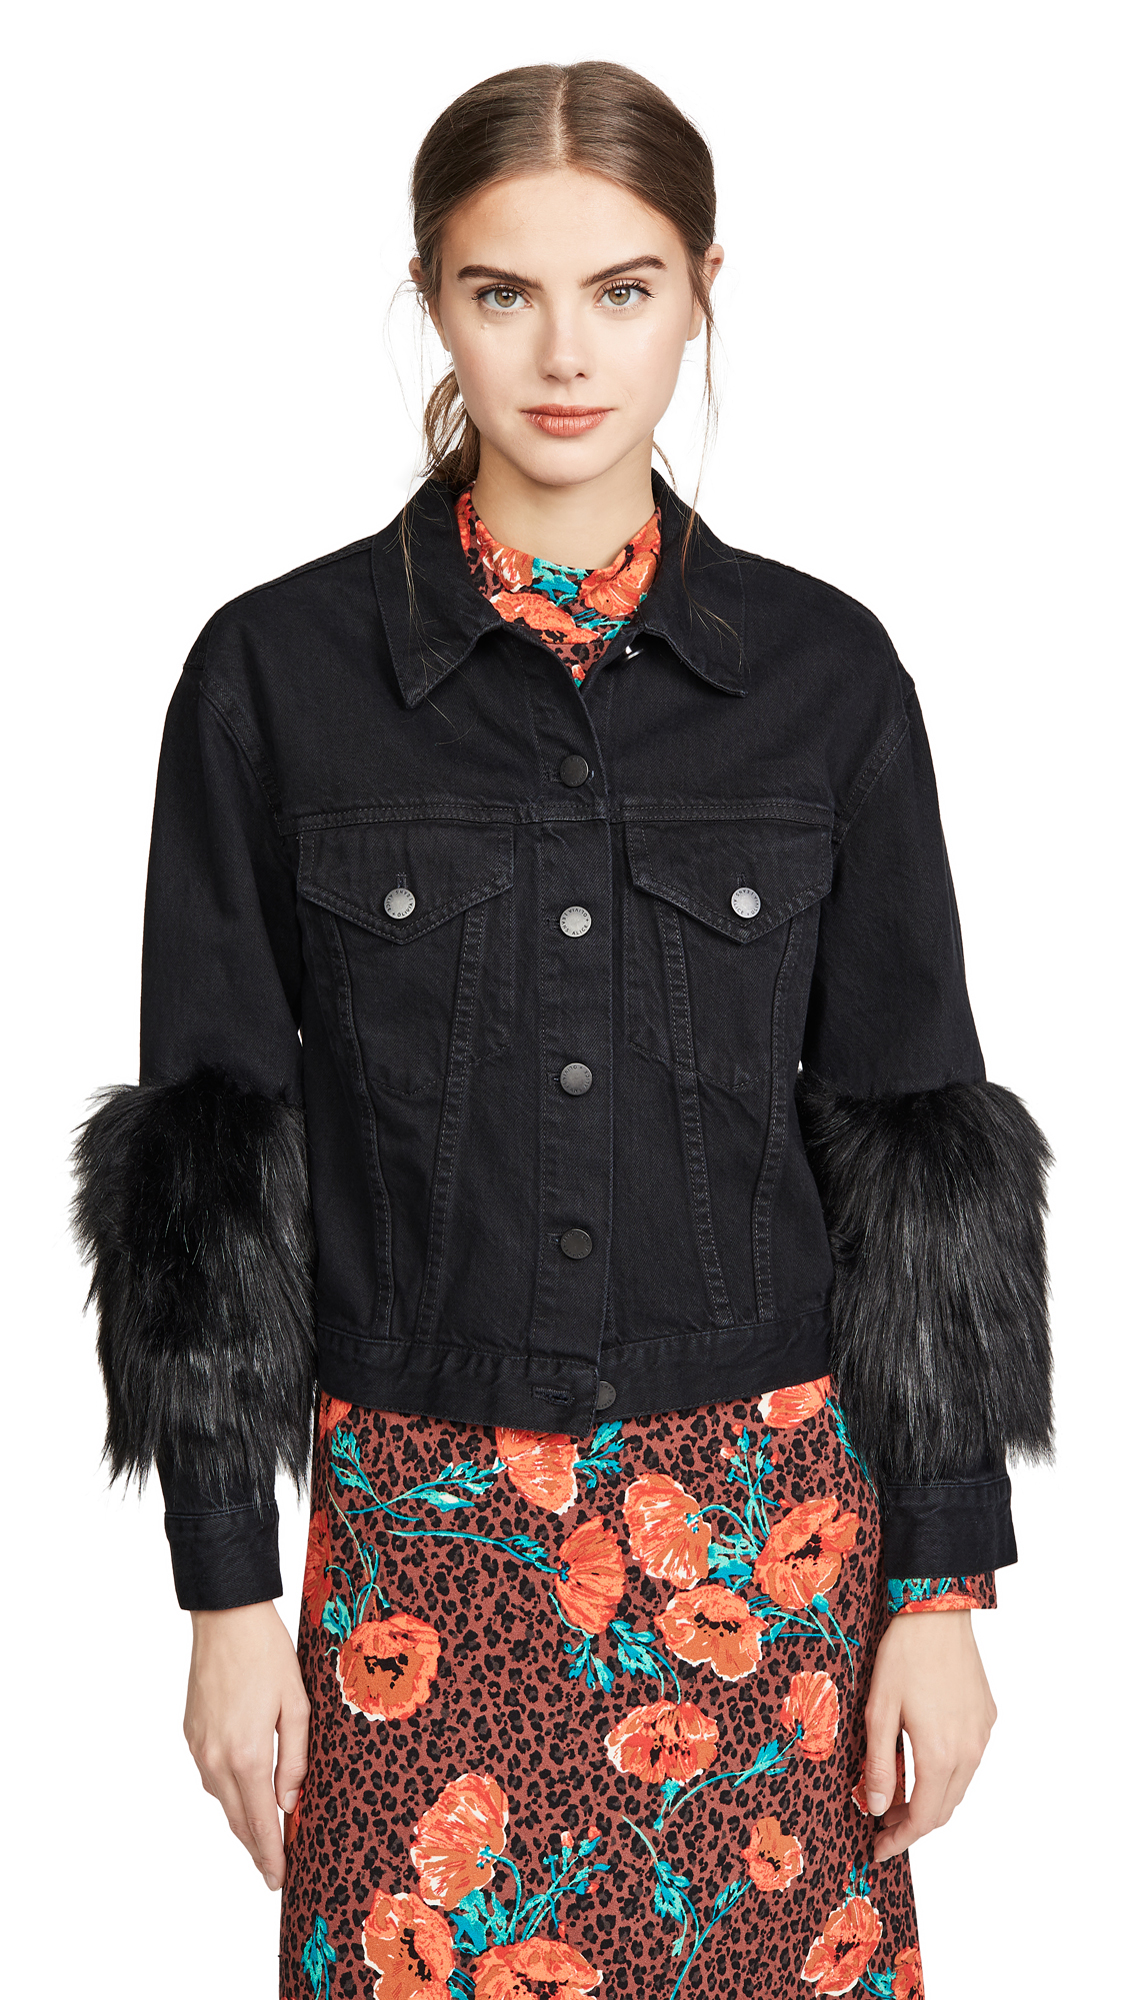 Buy ALICE + OLIVIA JEANS Cropped Jacket with Faux Fur Sleeve online beautiful ALICE + OLIVIA JEANS Clothing, Jackets